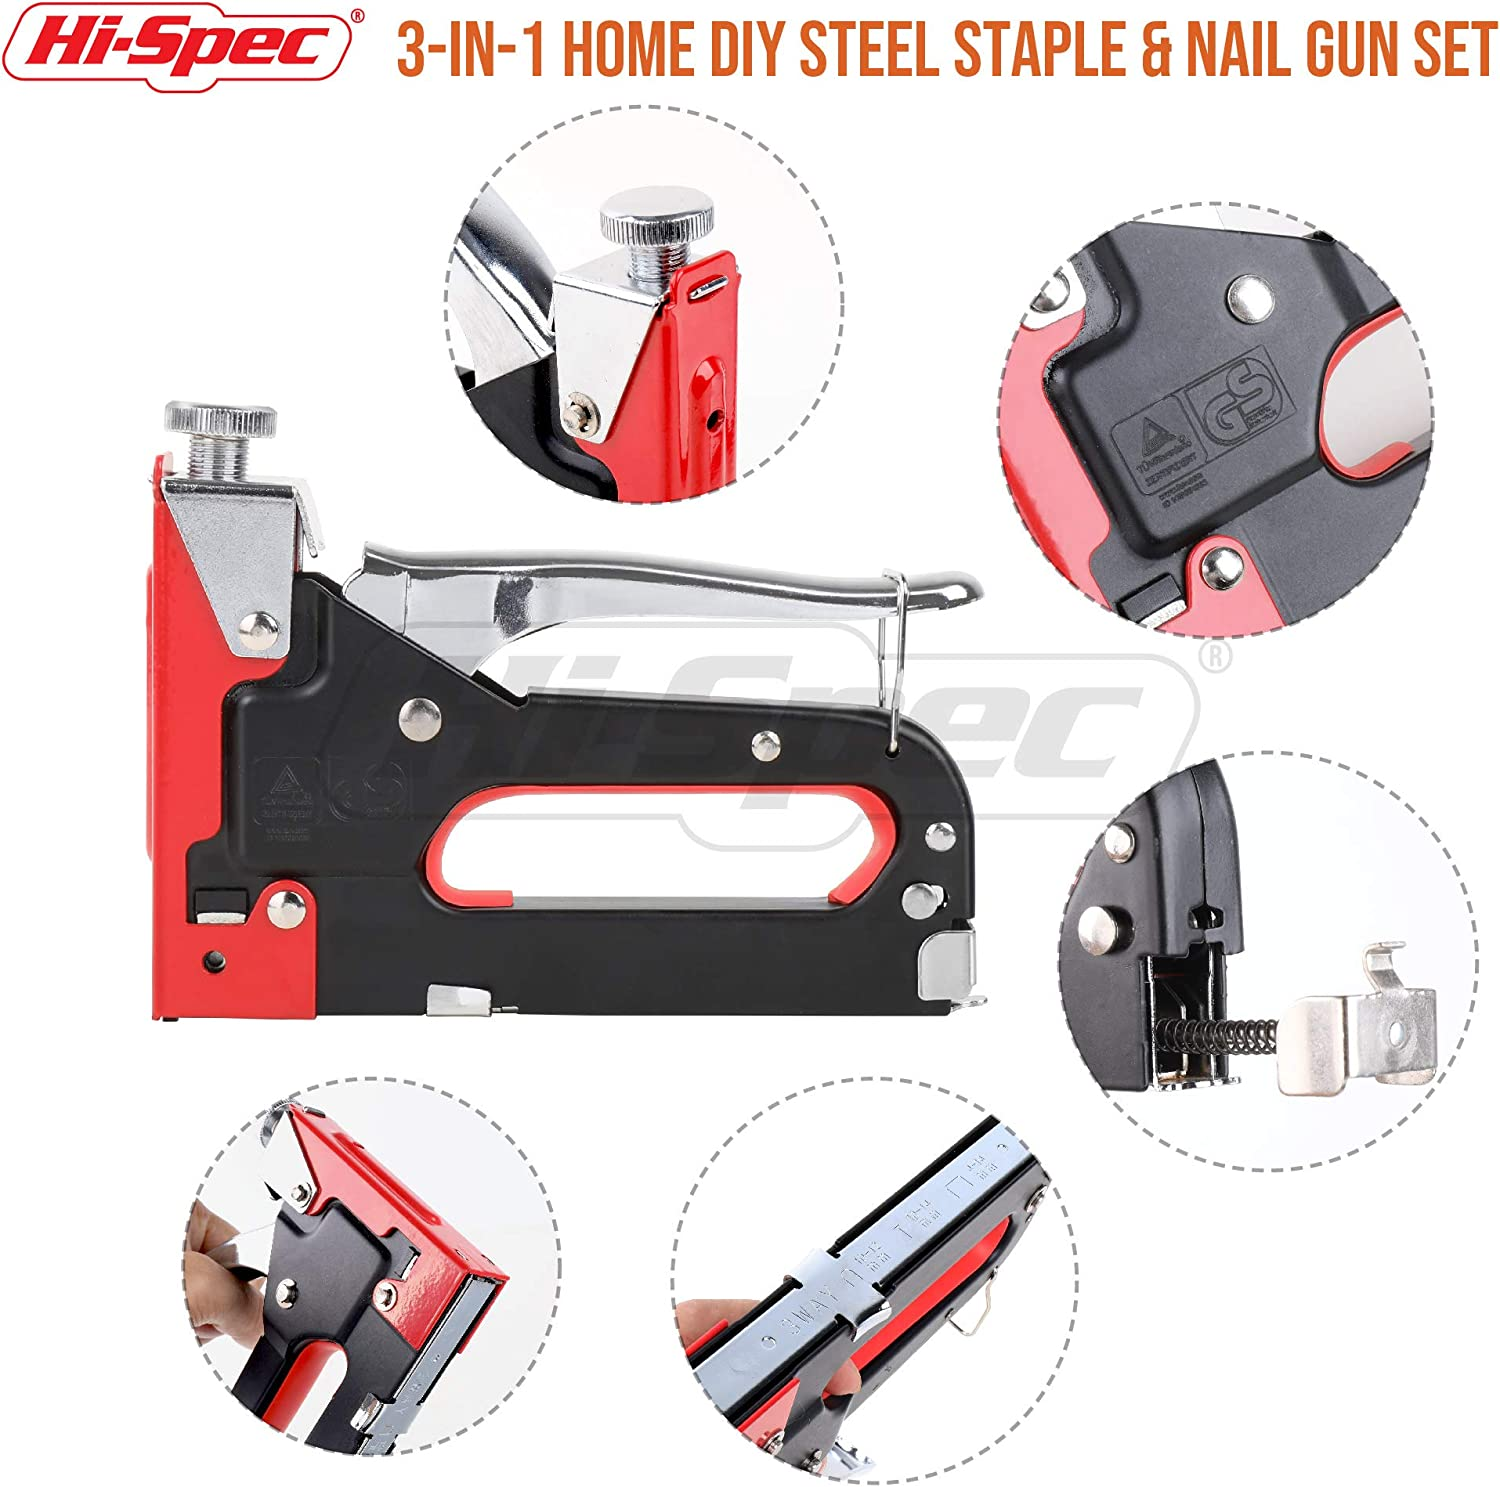 Hi-Spec Steel Staple and Nail Gun